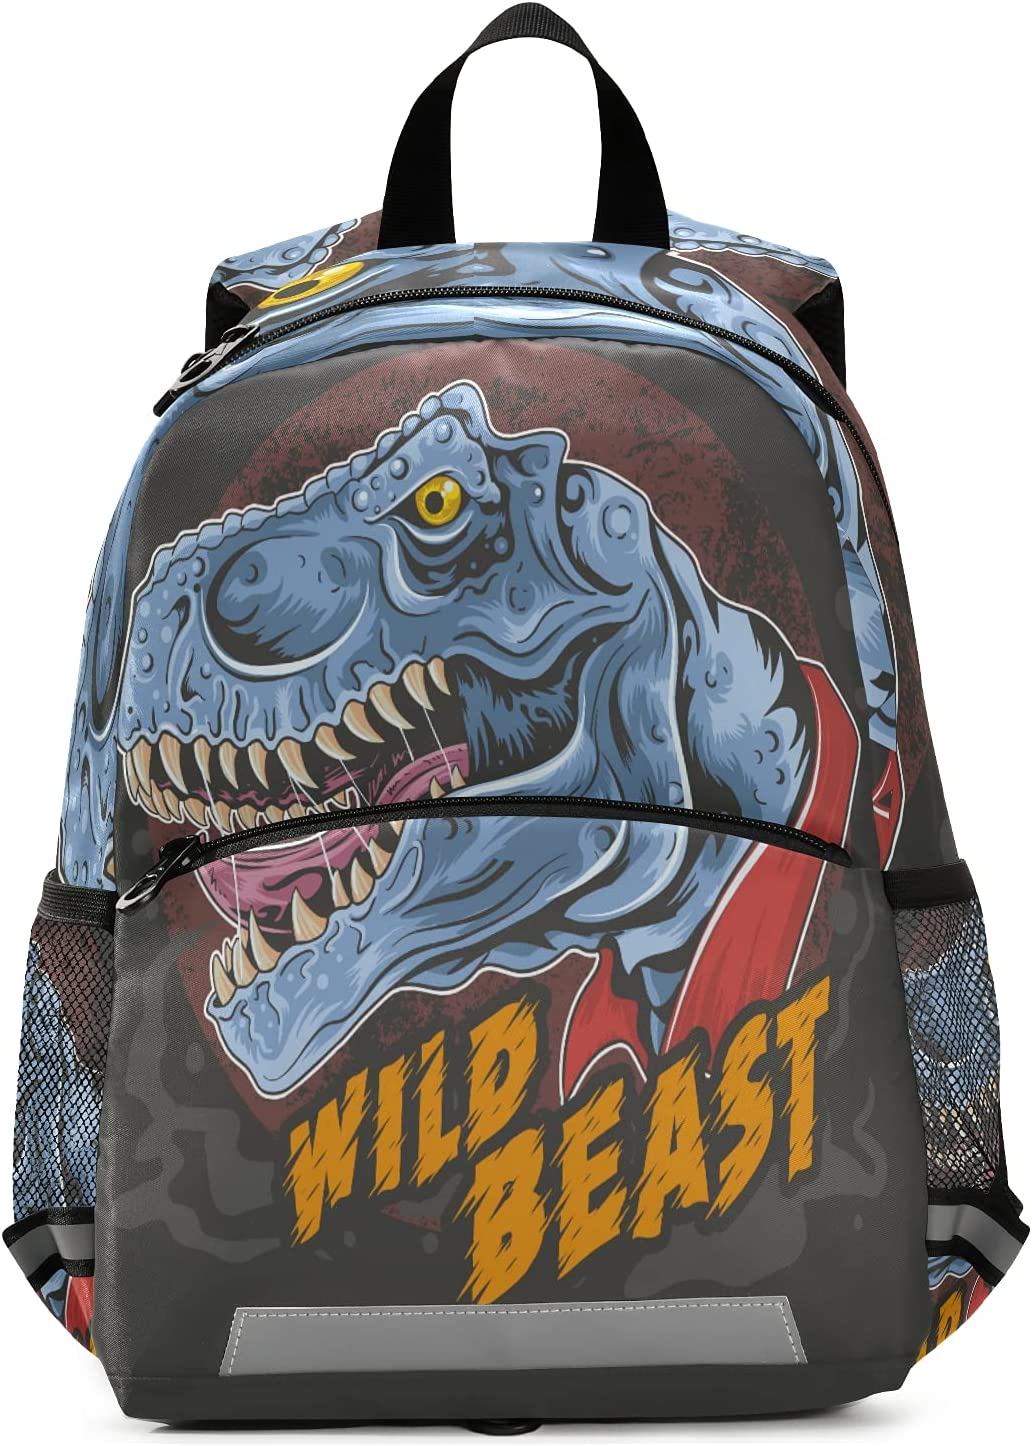 Wild Beast Dino Backpack for Boys and Girls Kid's Preschool Nursery Book bags Toddlers Kindergarten Schoolbags with Chest Clip and Safety Leash Children Daycare Bag Perfect Size for School and Travel